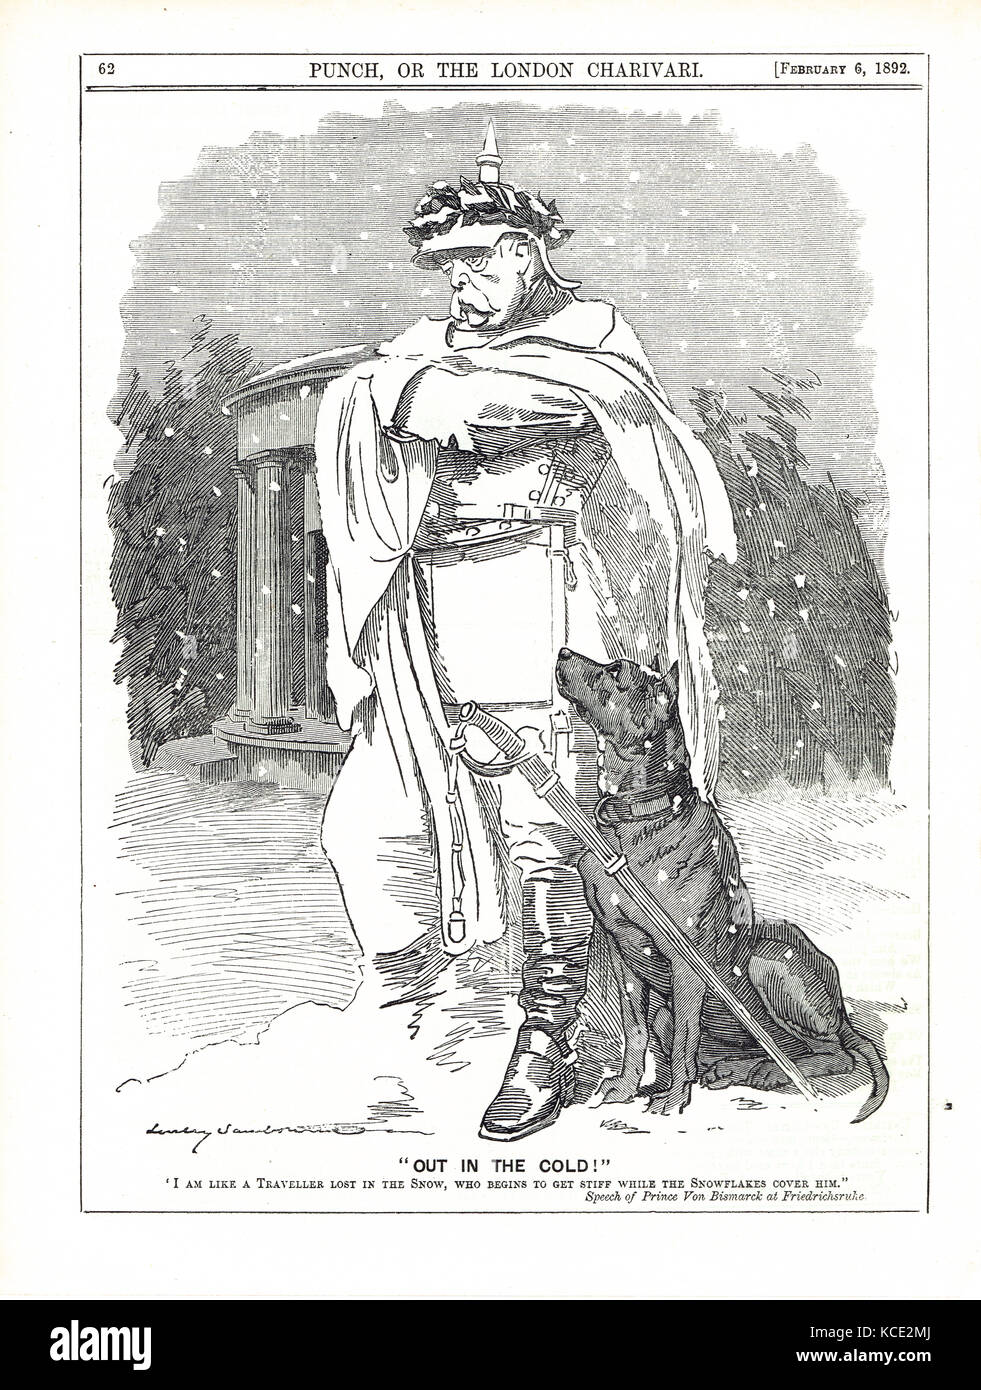 Otto von Bismarck out in the cold, 1892 - Stock Image